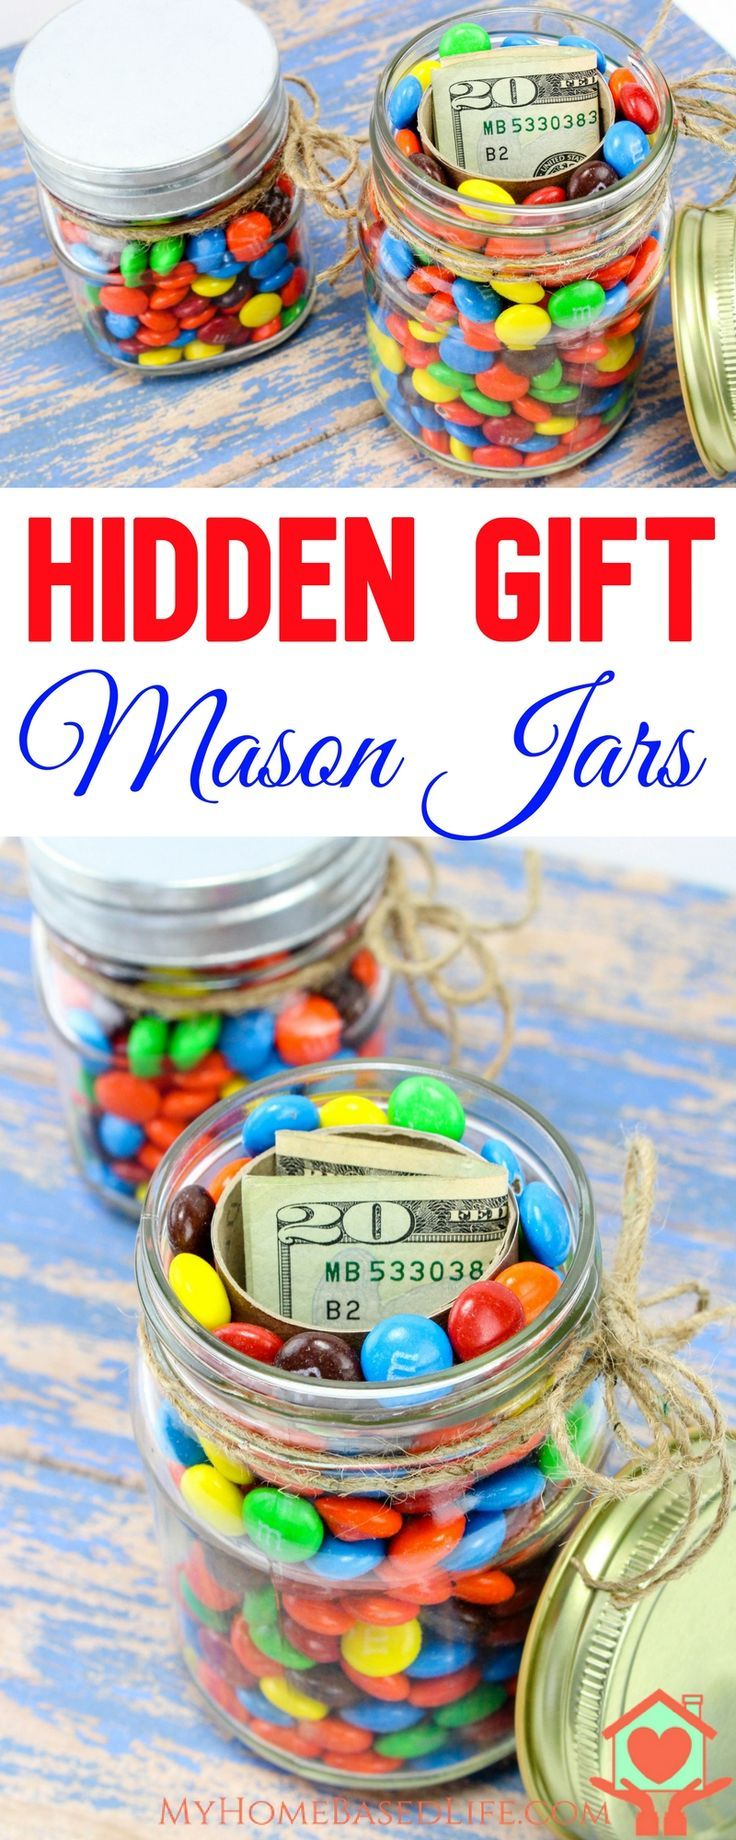 Hidden Gift Jars Make Giving The Gift Of Money A Mystery Christmas Jar Gifts Jar Gifts Money Gift